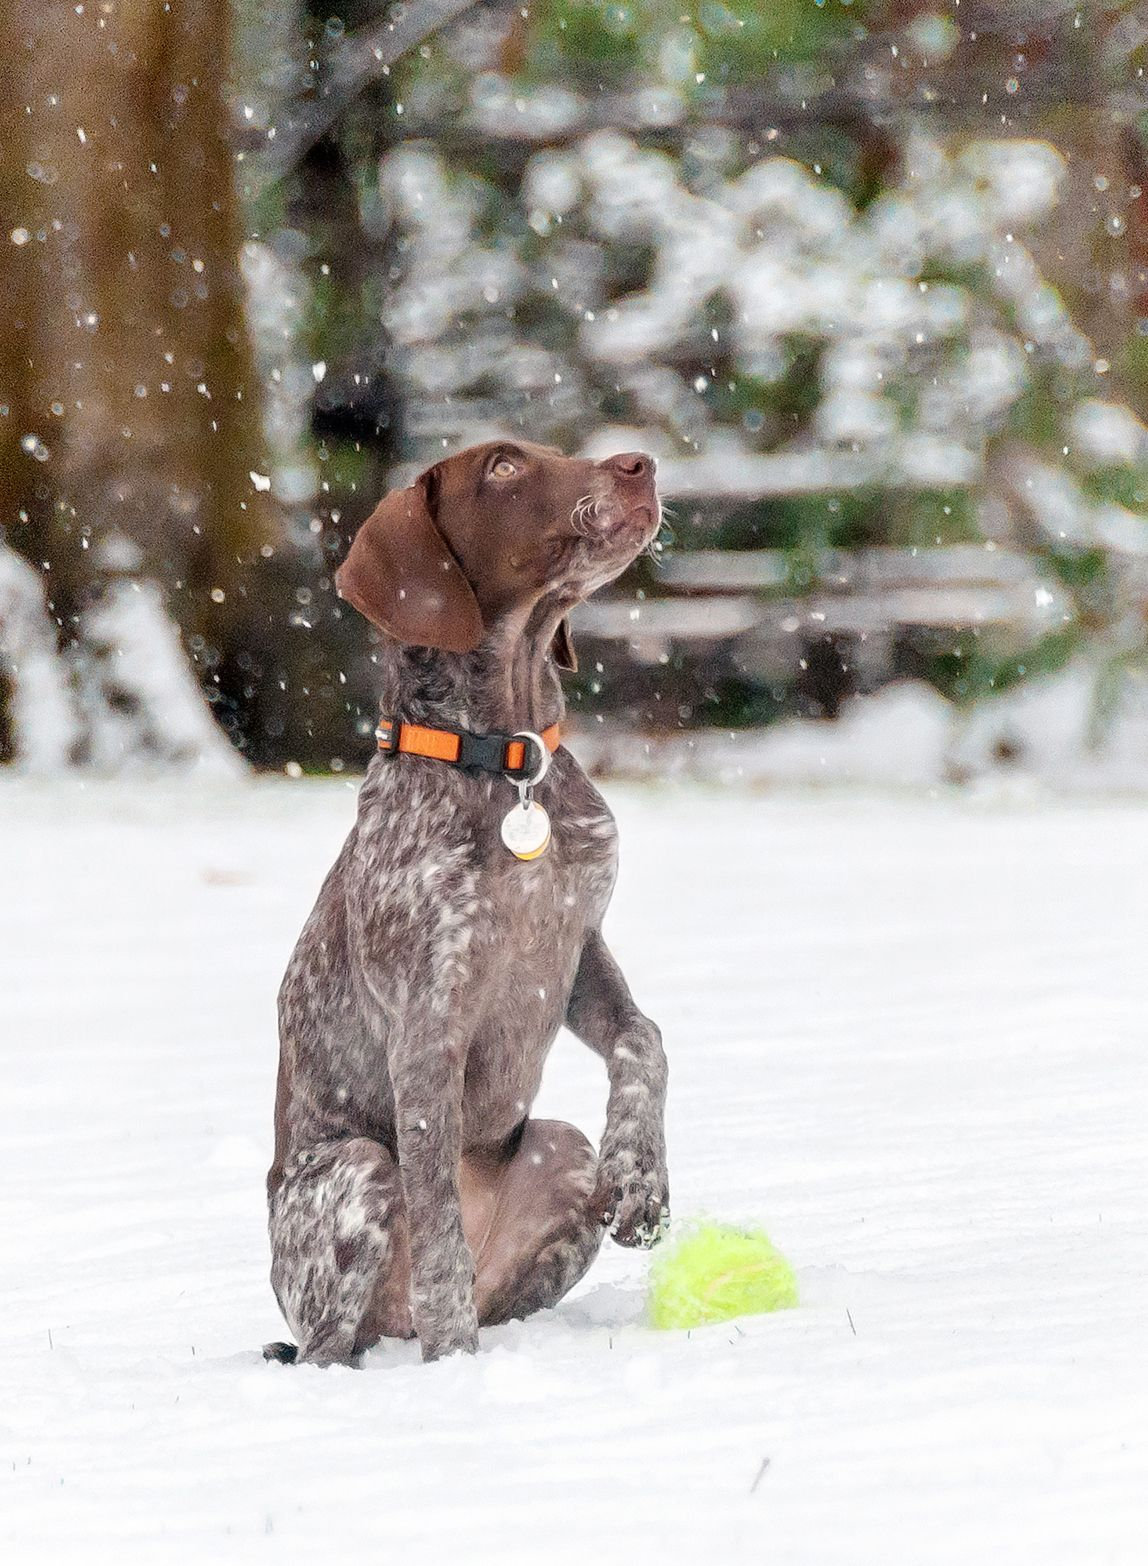 Gsp Puppy Playing In Snow For The First Time Puppy Play Gsp